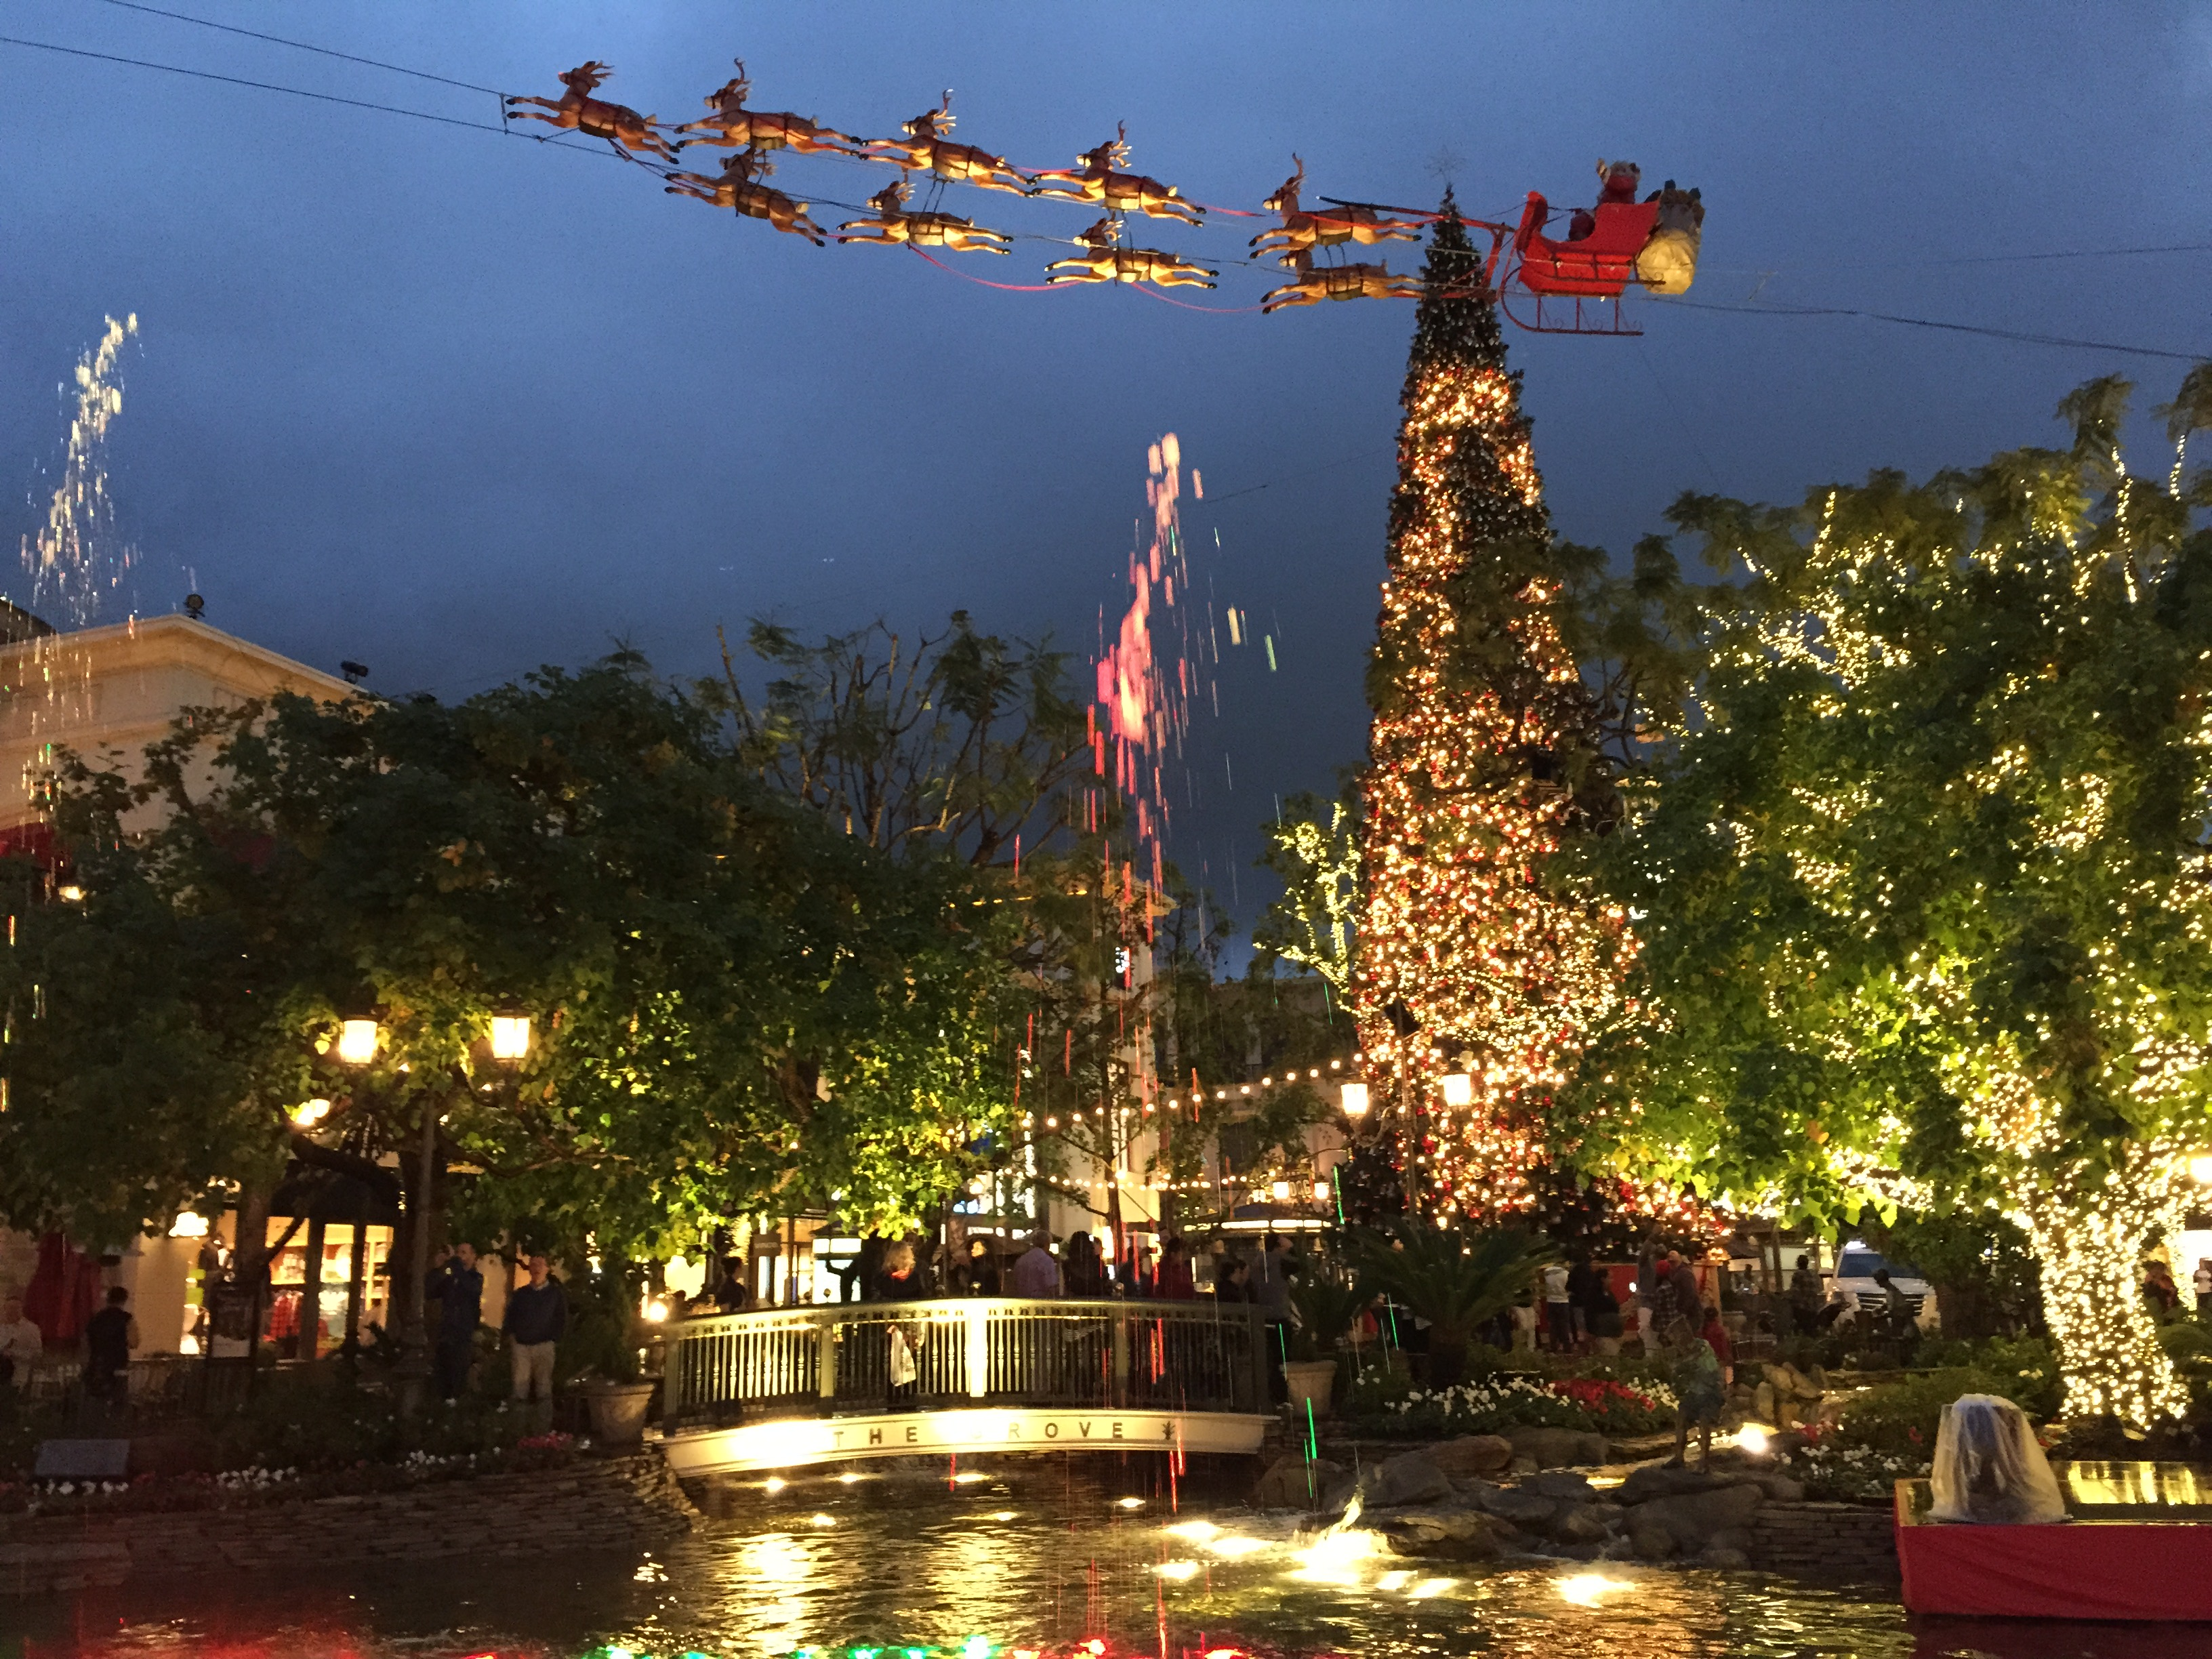 Hanging out at the Americana at Brand in Glendale with my family over Christmas 2014.